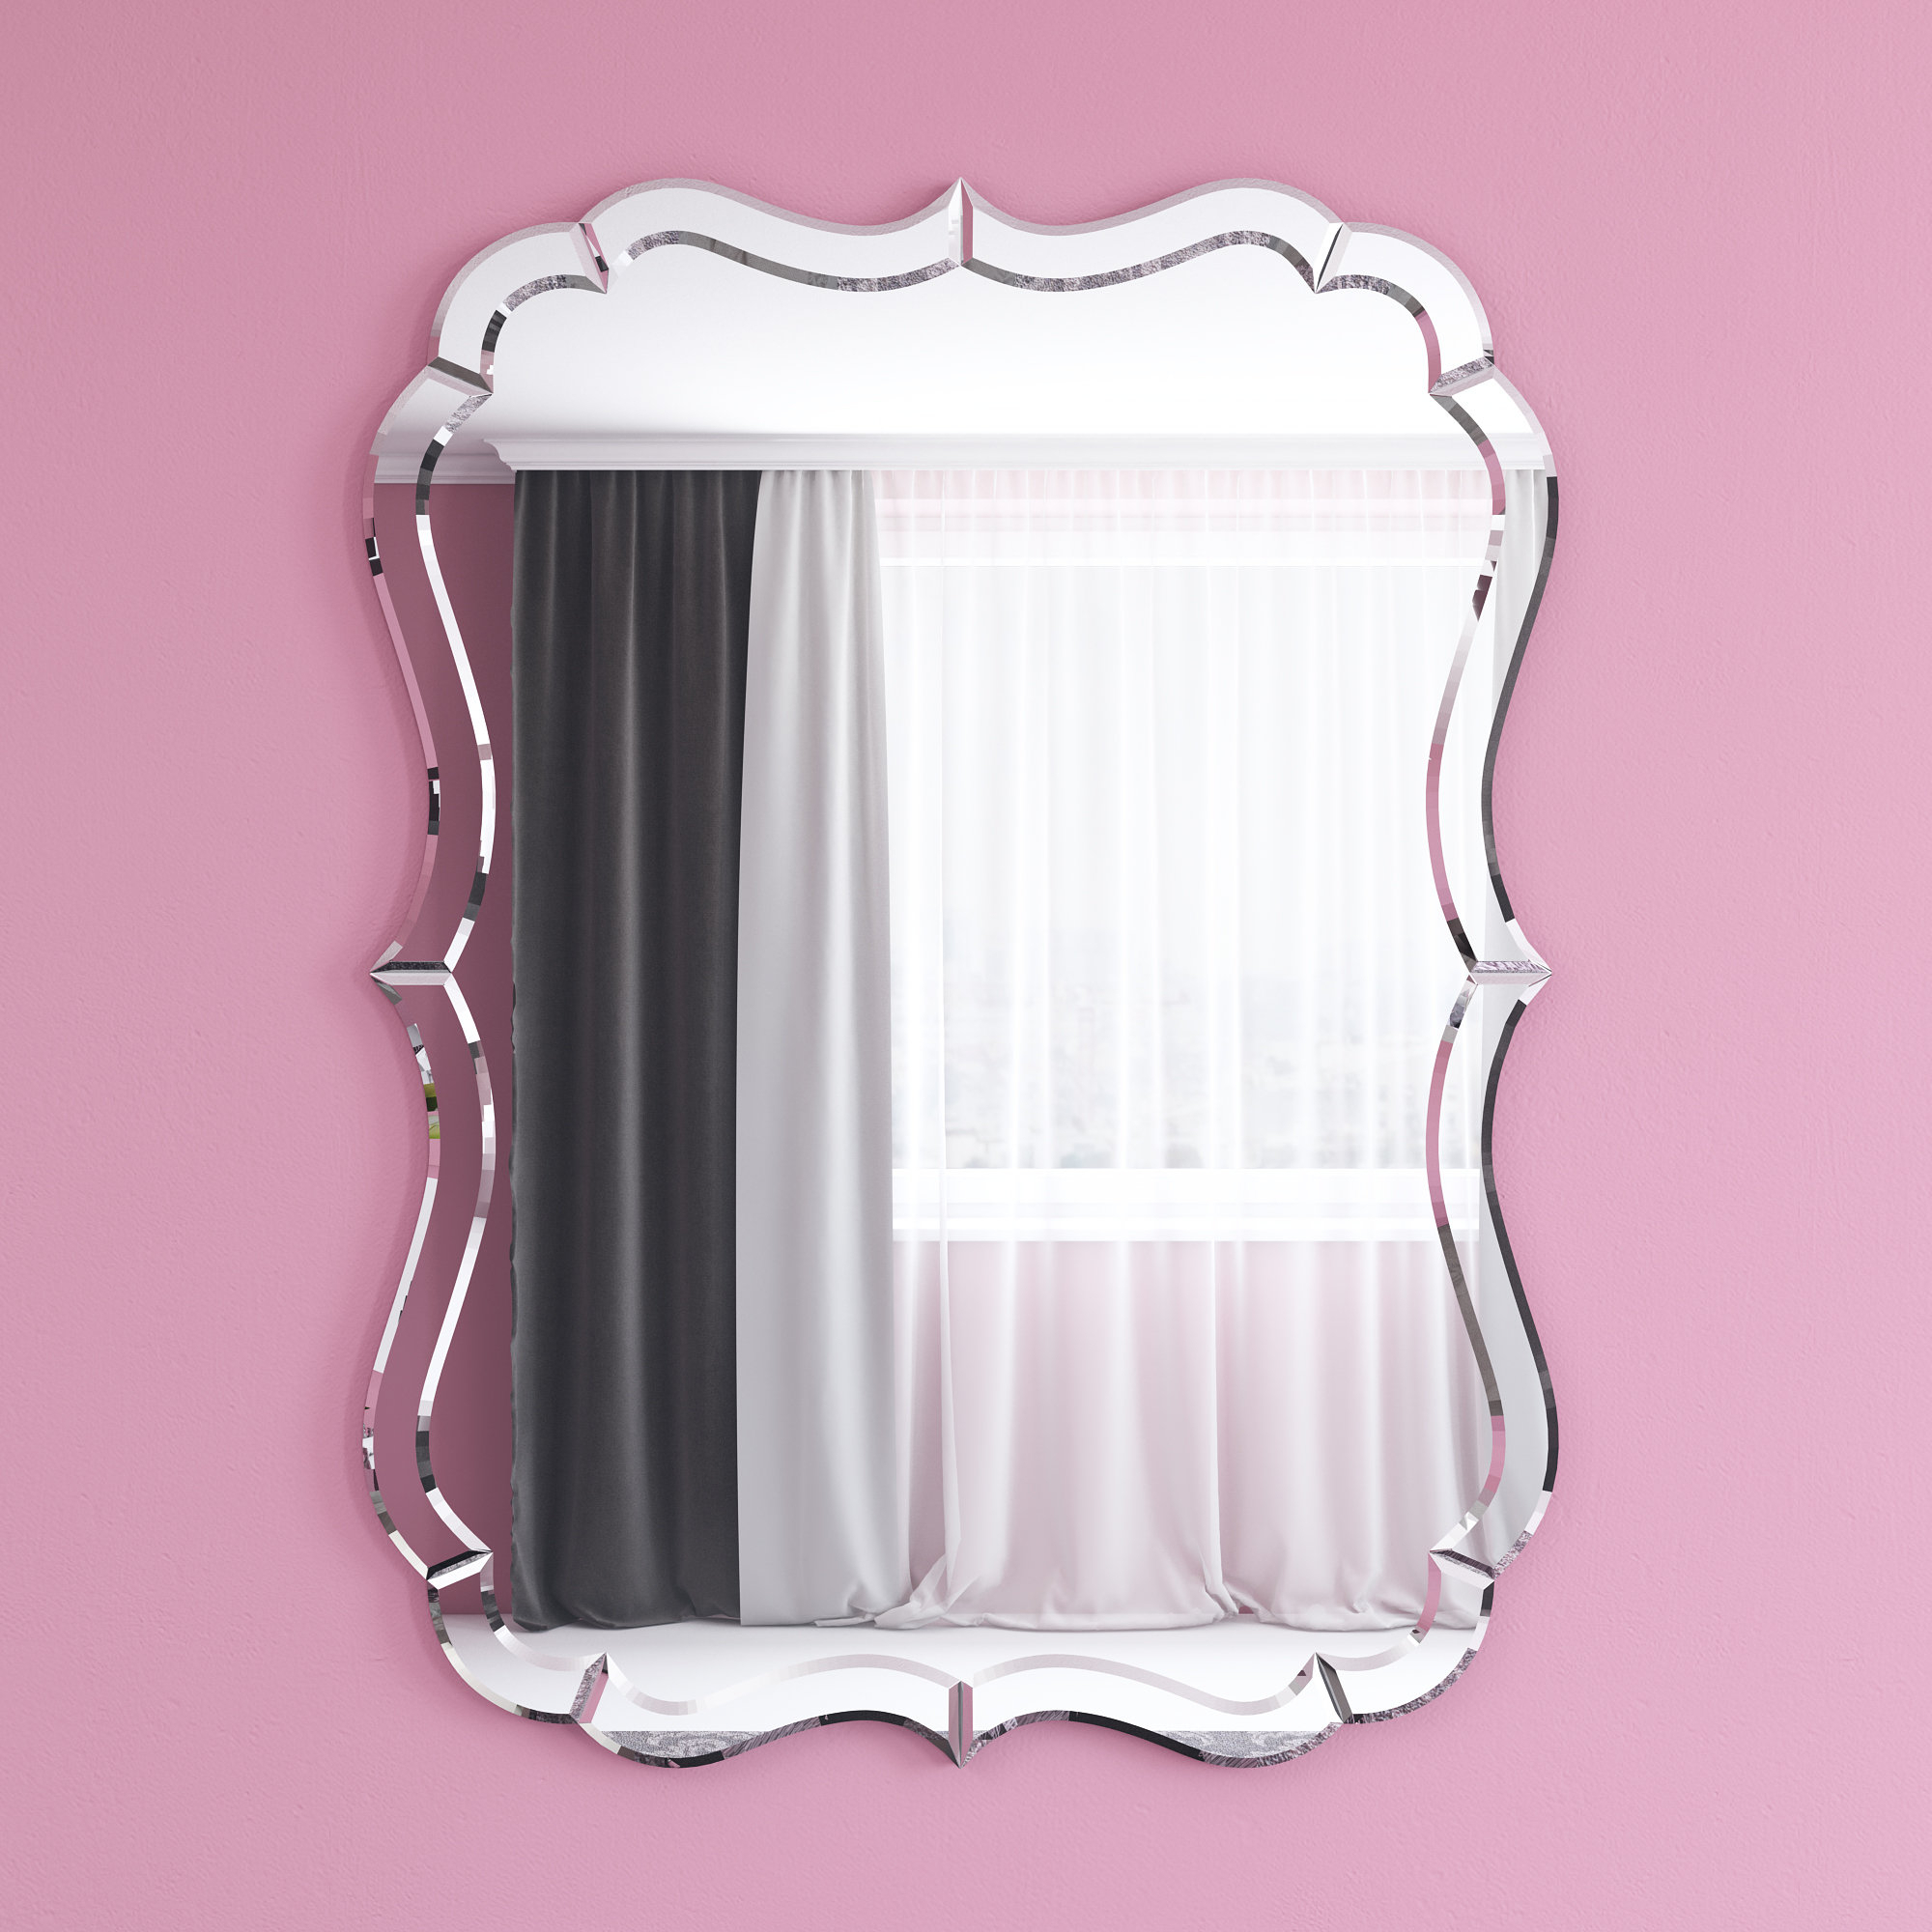 Tolya Accent Mirror Intended For Guidinha Modern & Contemporary Accent Mirrors (View 27 of 30)